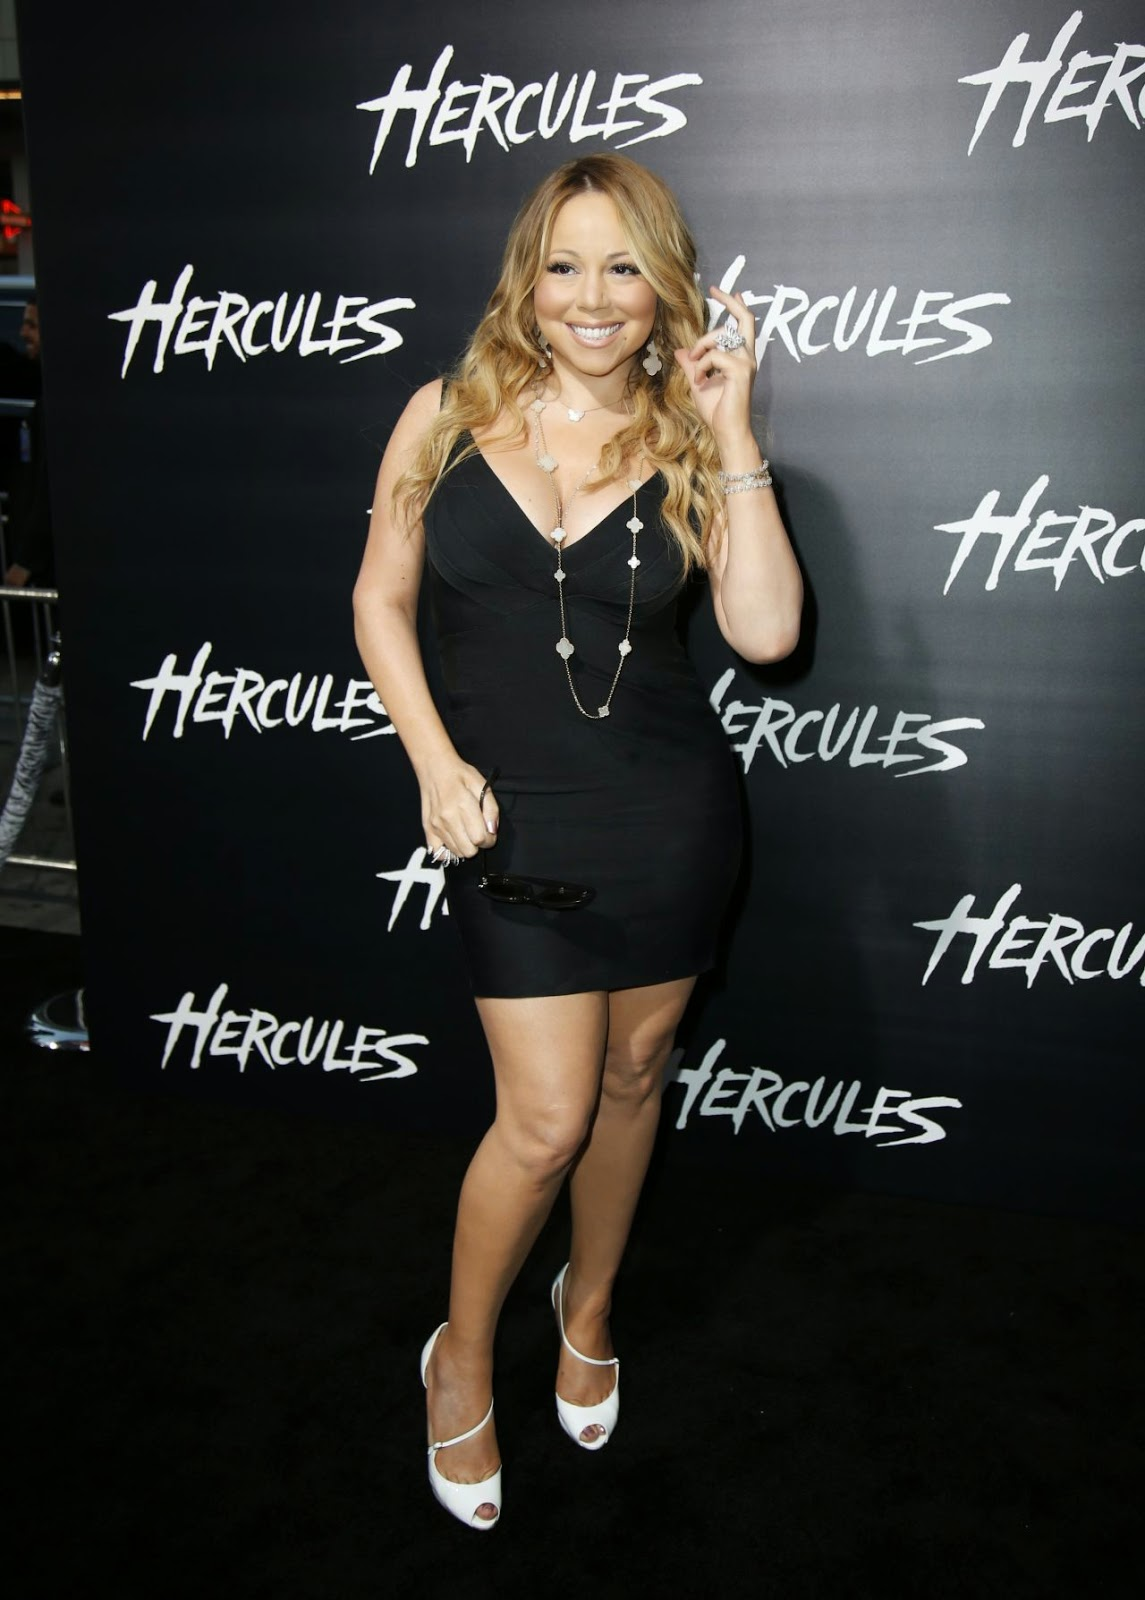 Mariah Carey shows off curves in a short black dress at the 'Hercules' LA premiere